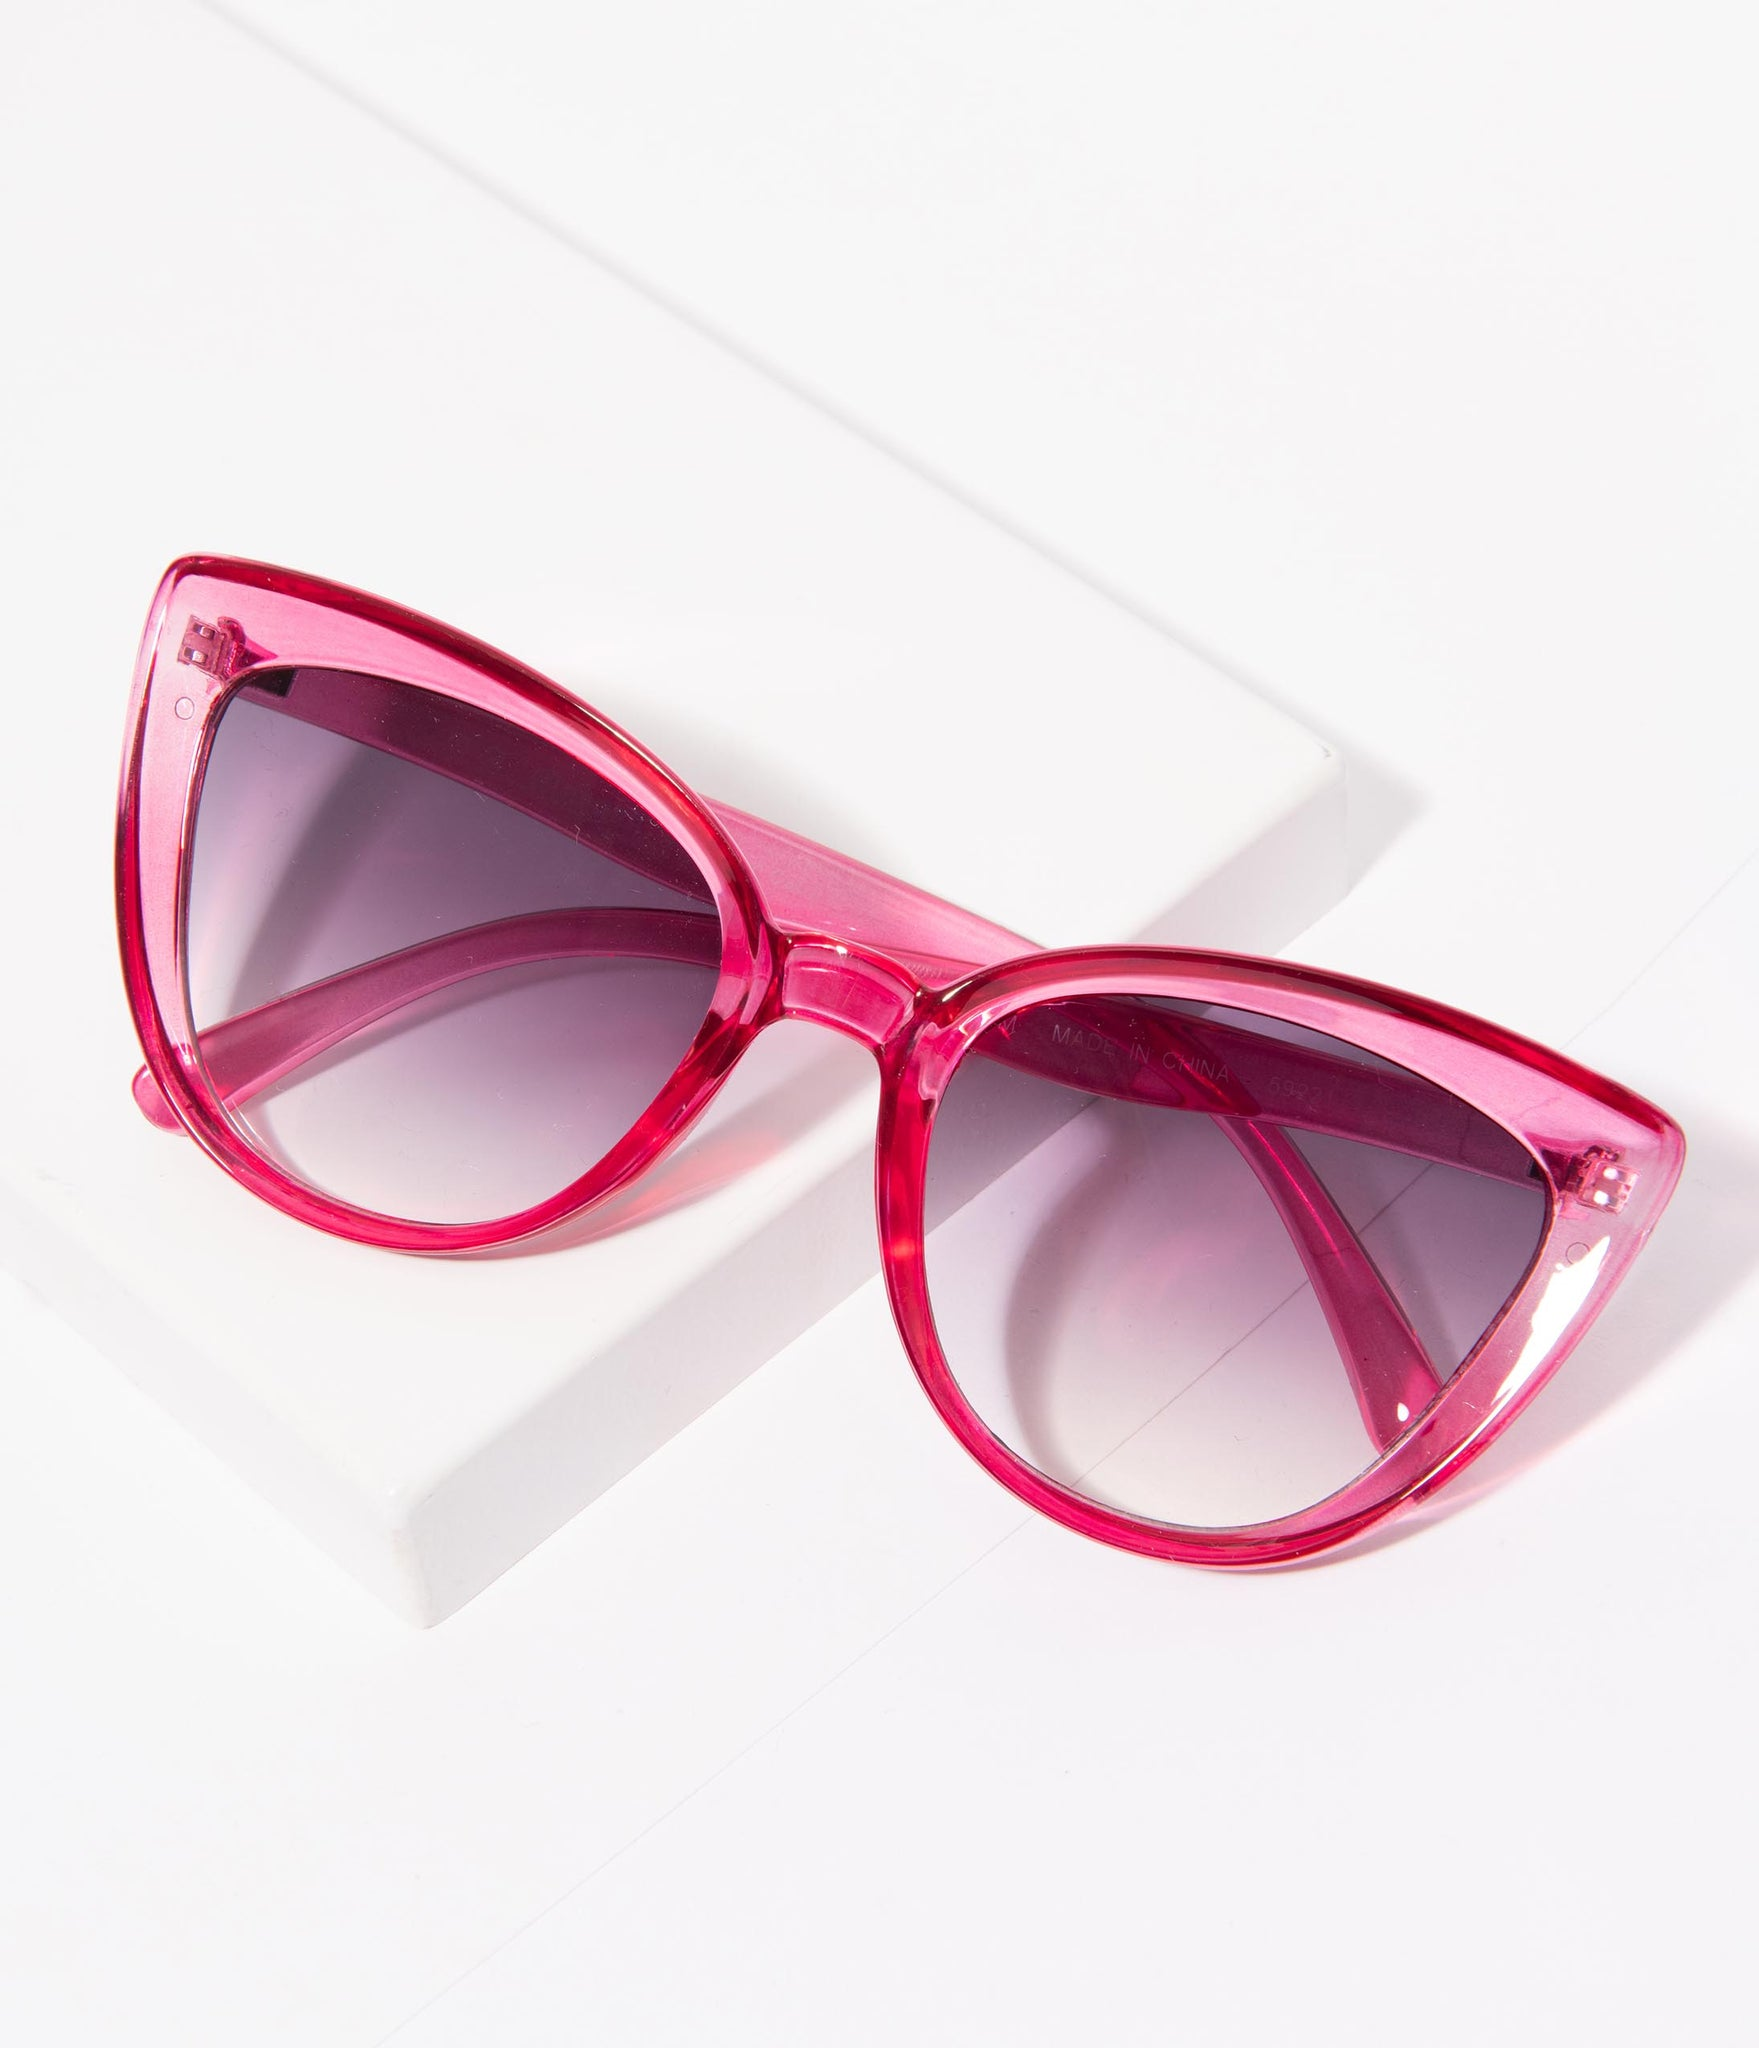 Vintage Style Hot Pink Crystal Sweet Stuff Cat Eye Sunglasses